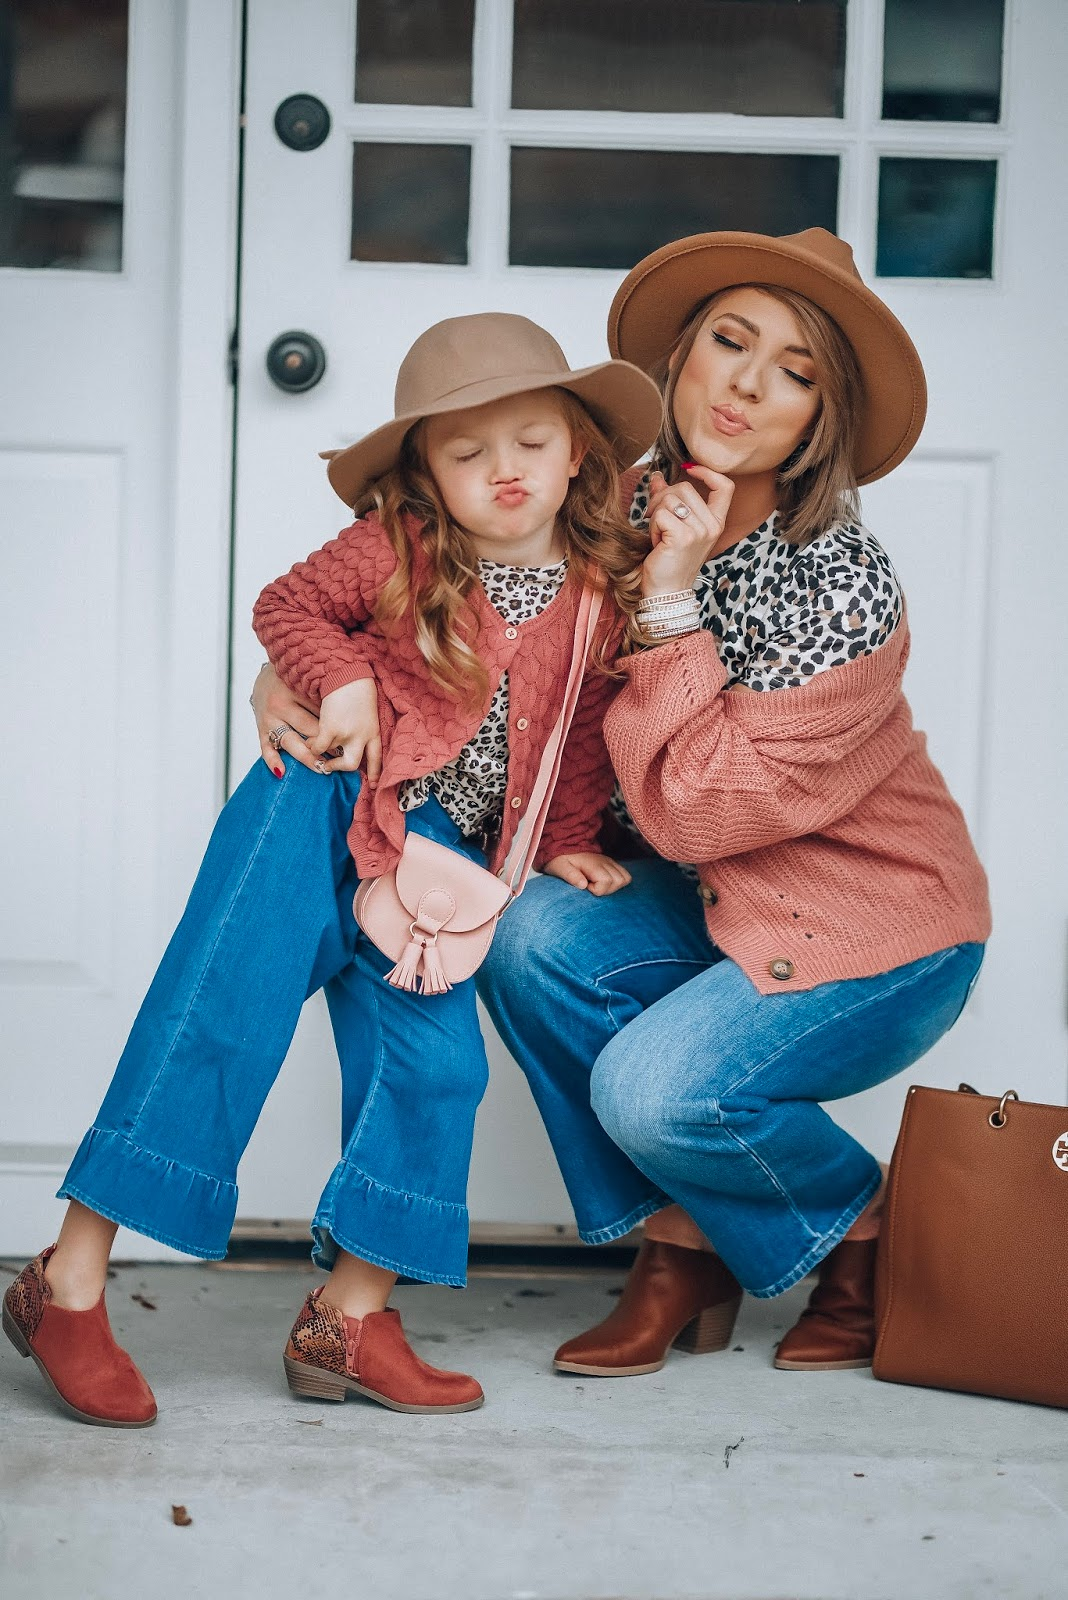 Mauve, Leopard and Flared Cropped Jeans - Mommy and Me Style Fall 2019 - Something Delightful Blog #fallstyle